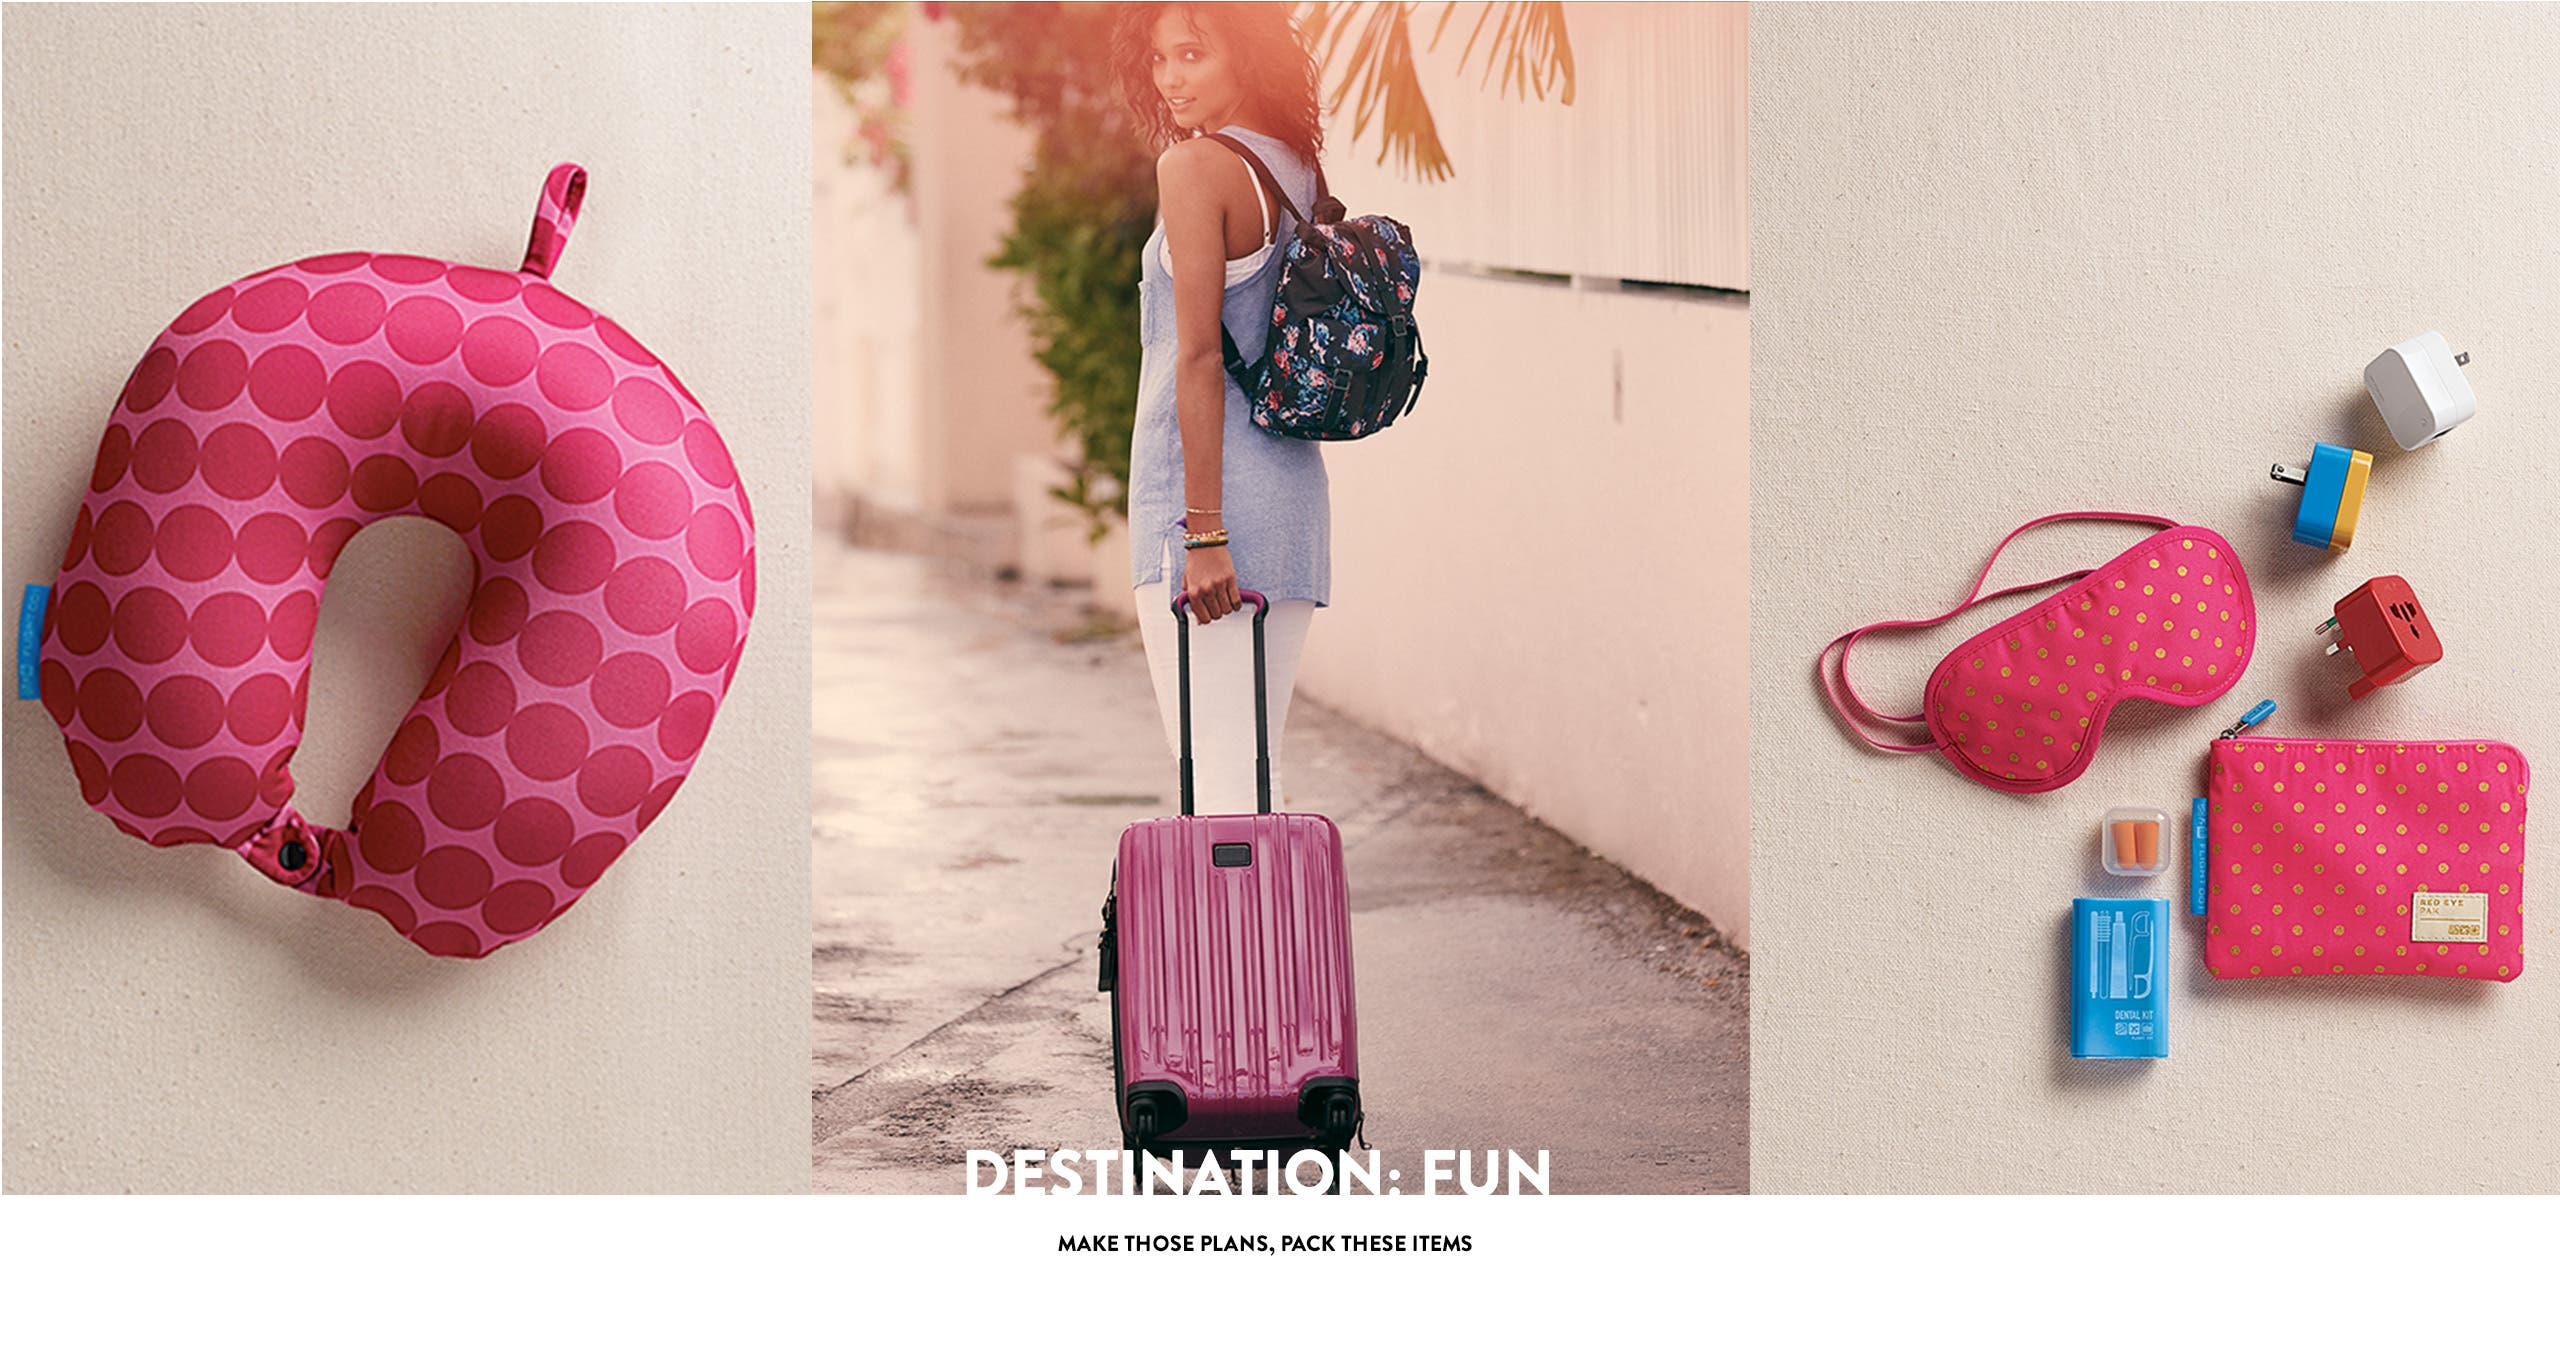 Destination, fun: must-pack travel items.